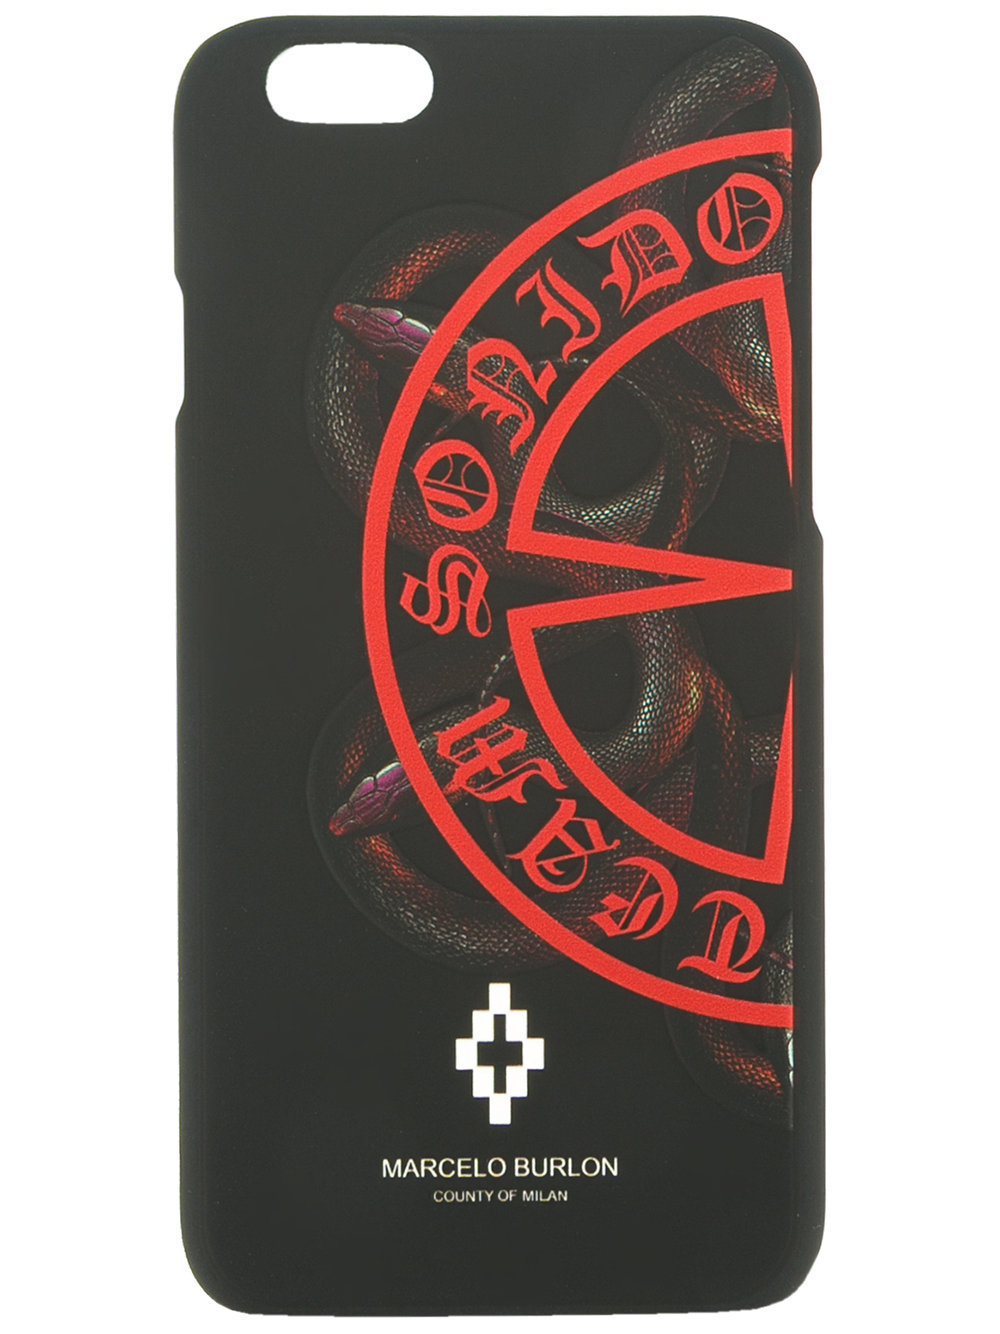 【関税送料込】MARCELO BURLON  Roberto iPhone 6 カバー